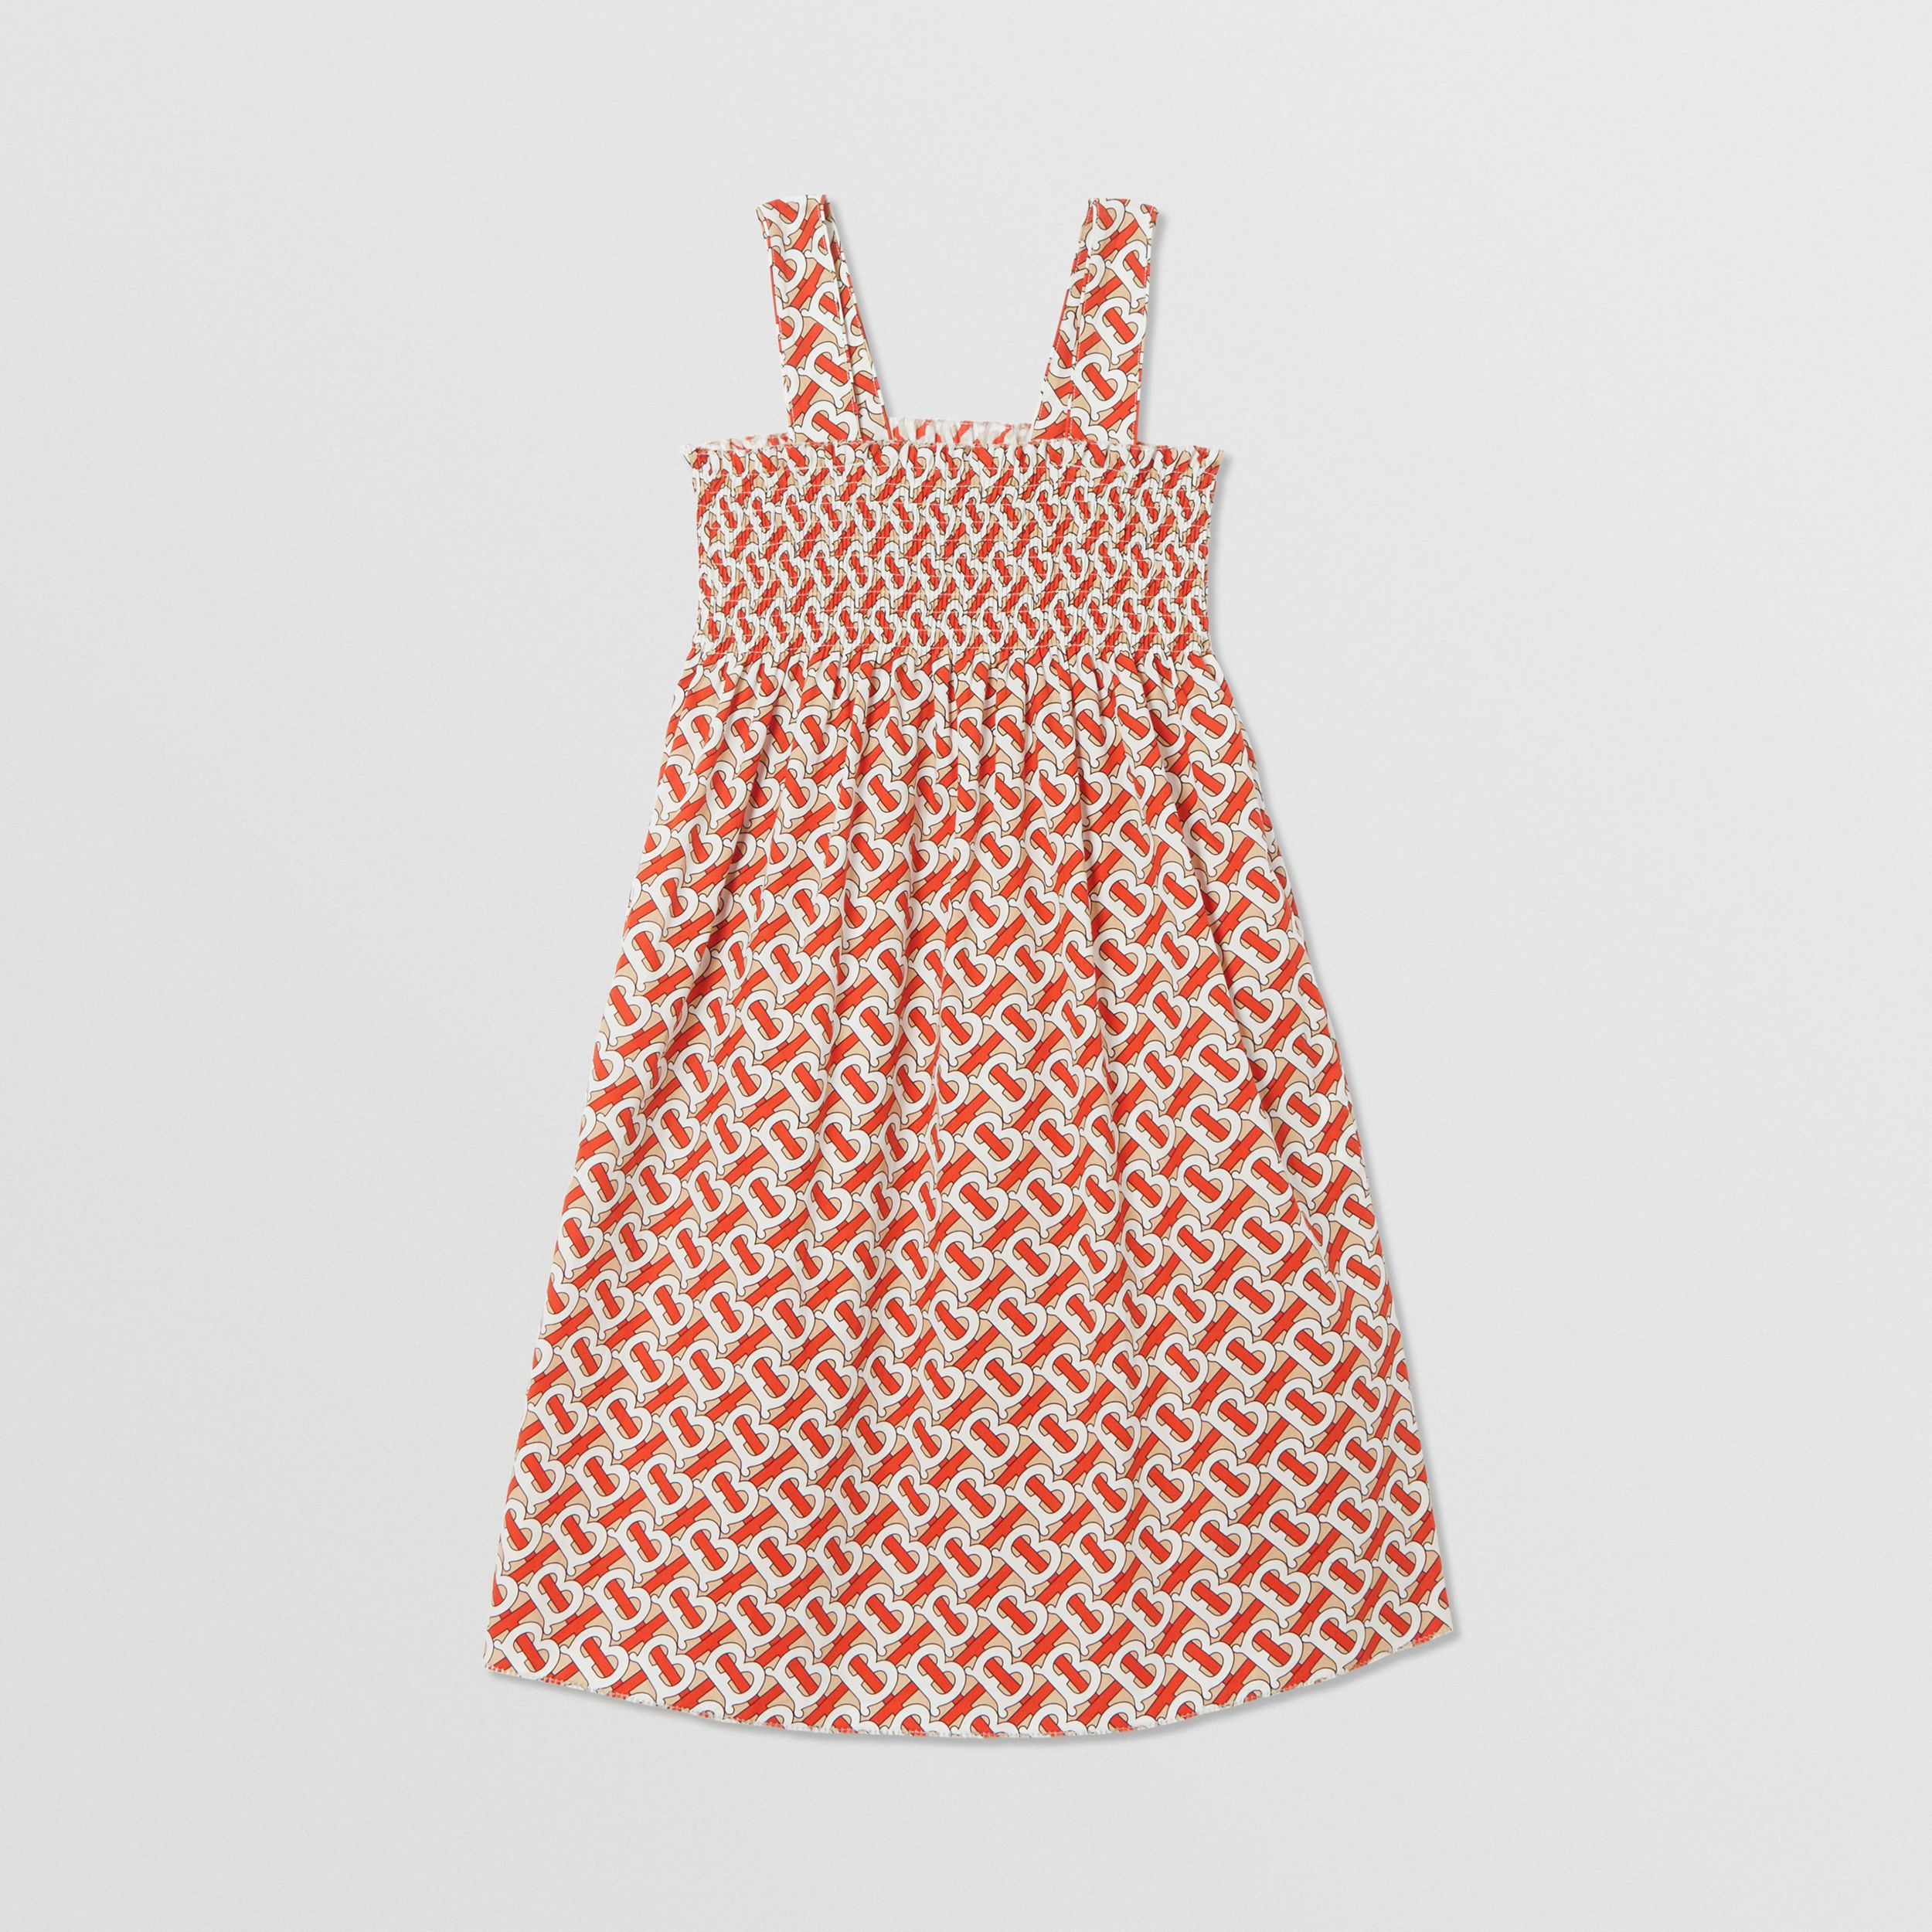 Smocked Monogram Print Cotton Poplin Dress in Vermilion Red | Burberry Hong Kong S.A.R. - 1